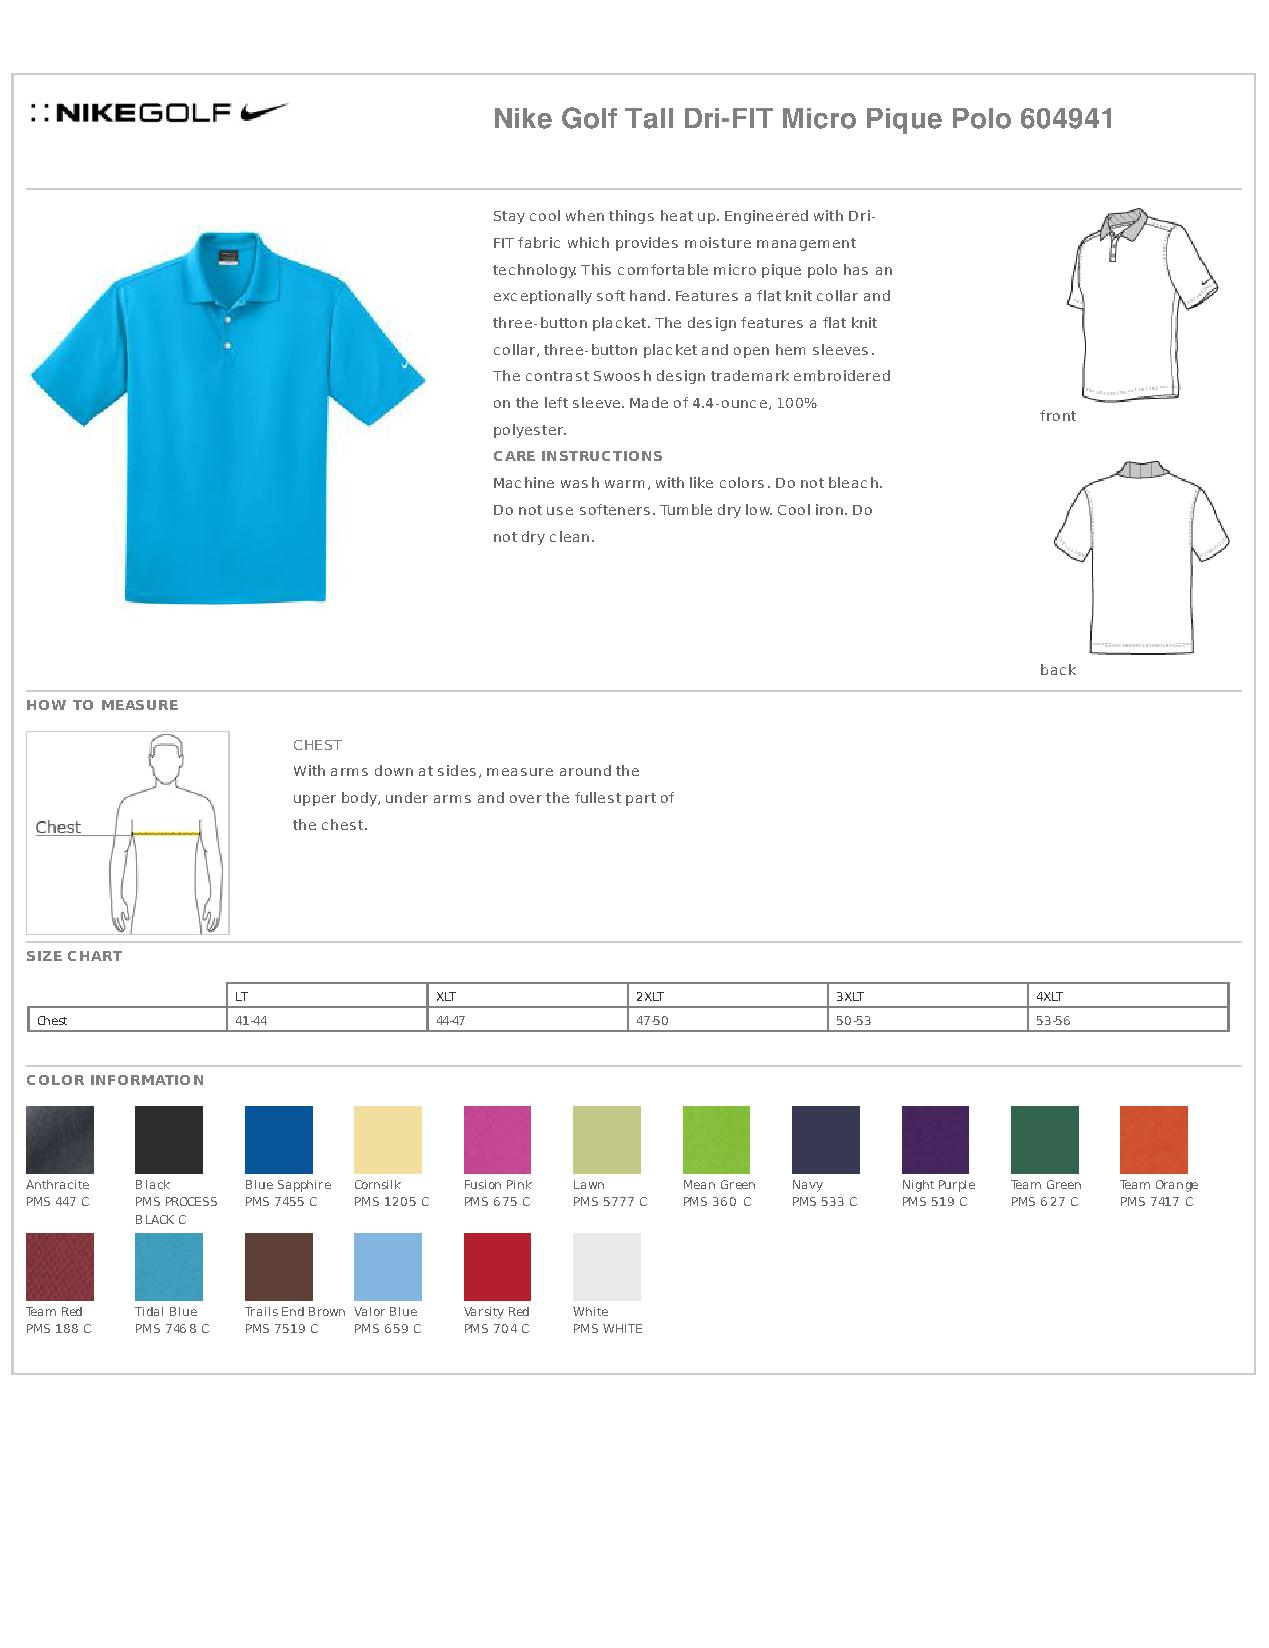 e08fb2f0 Nike Golf Tall Dri-FIT Micro Pique Polo. 604941 - Sports Shirts